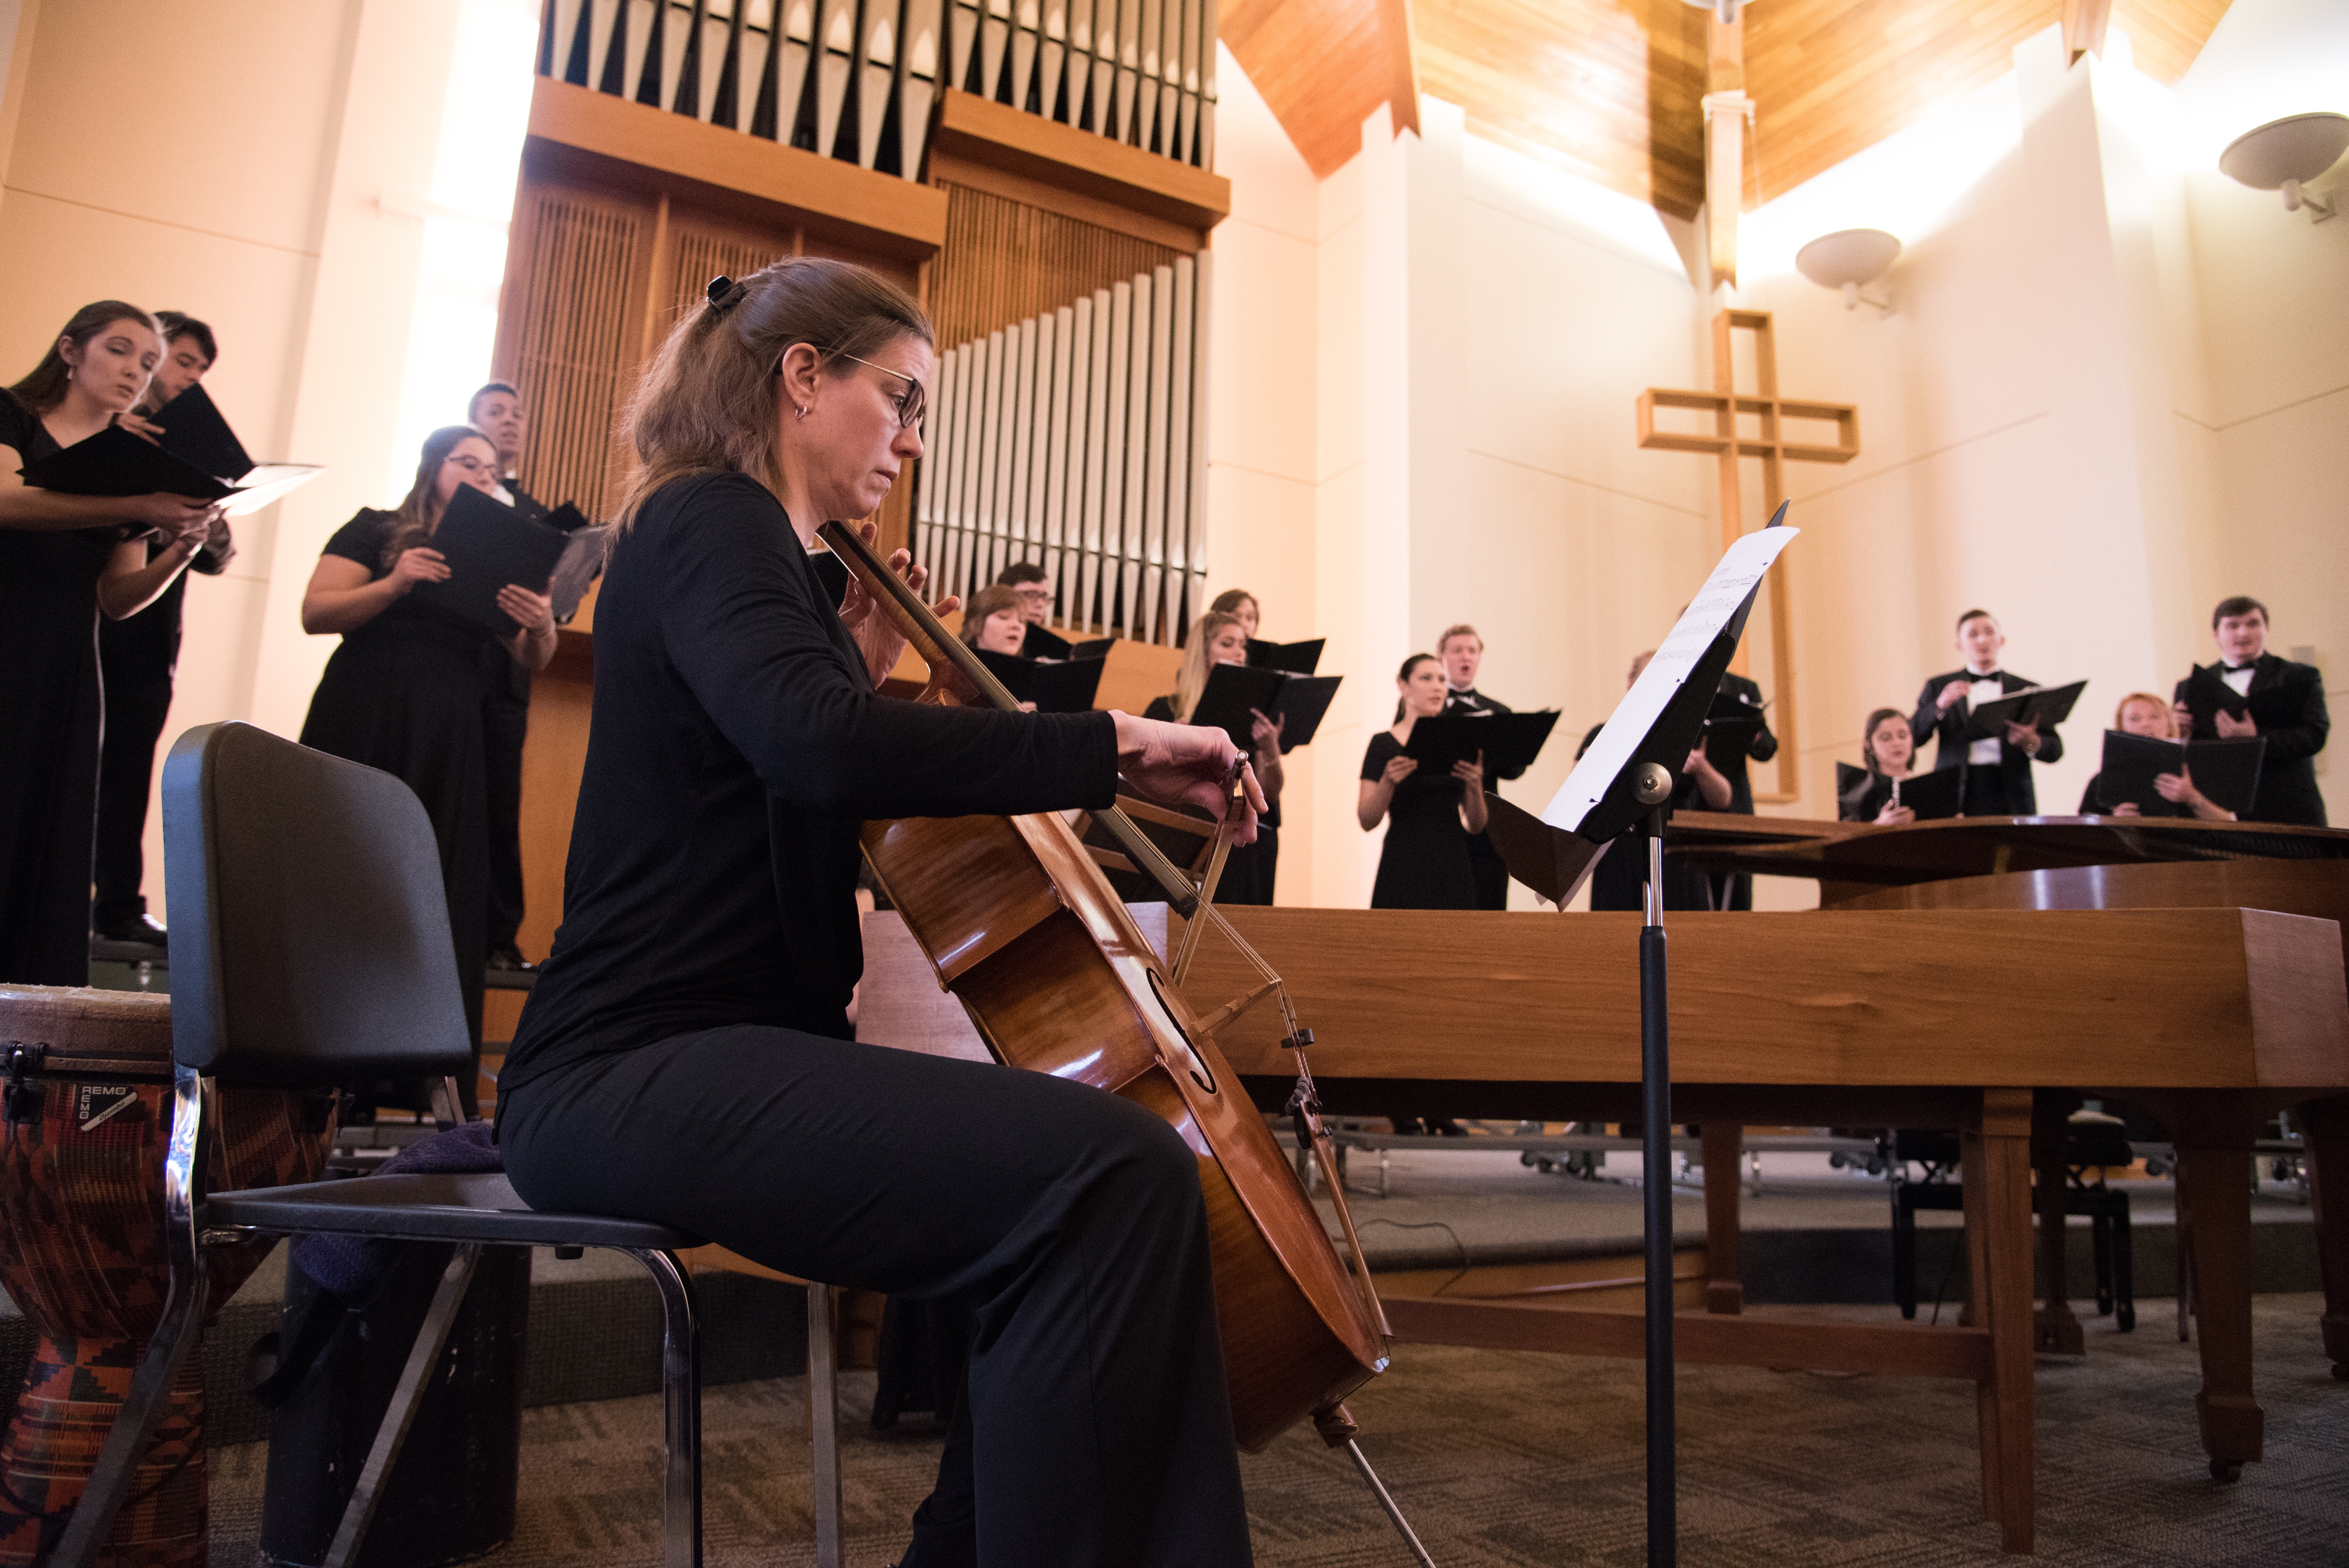 Cellist playing with choir